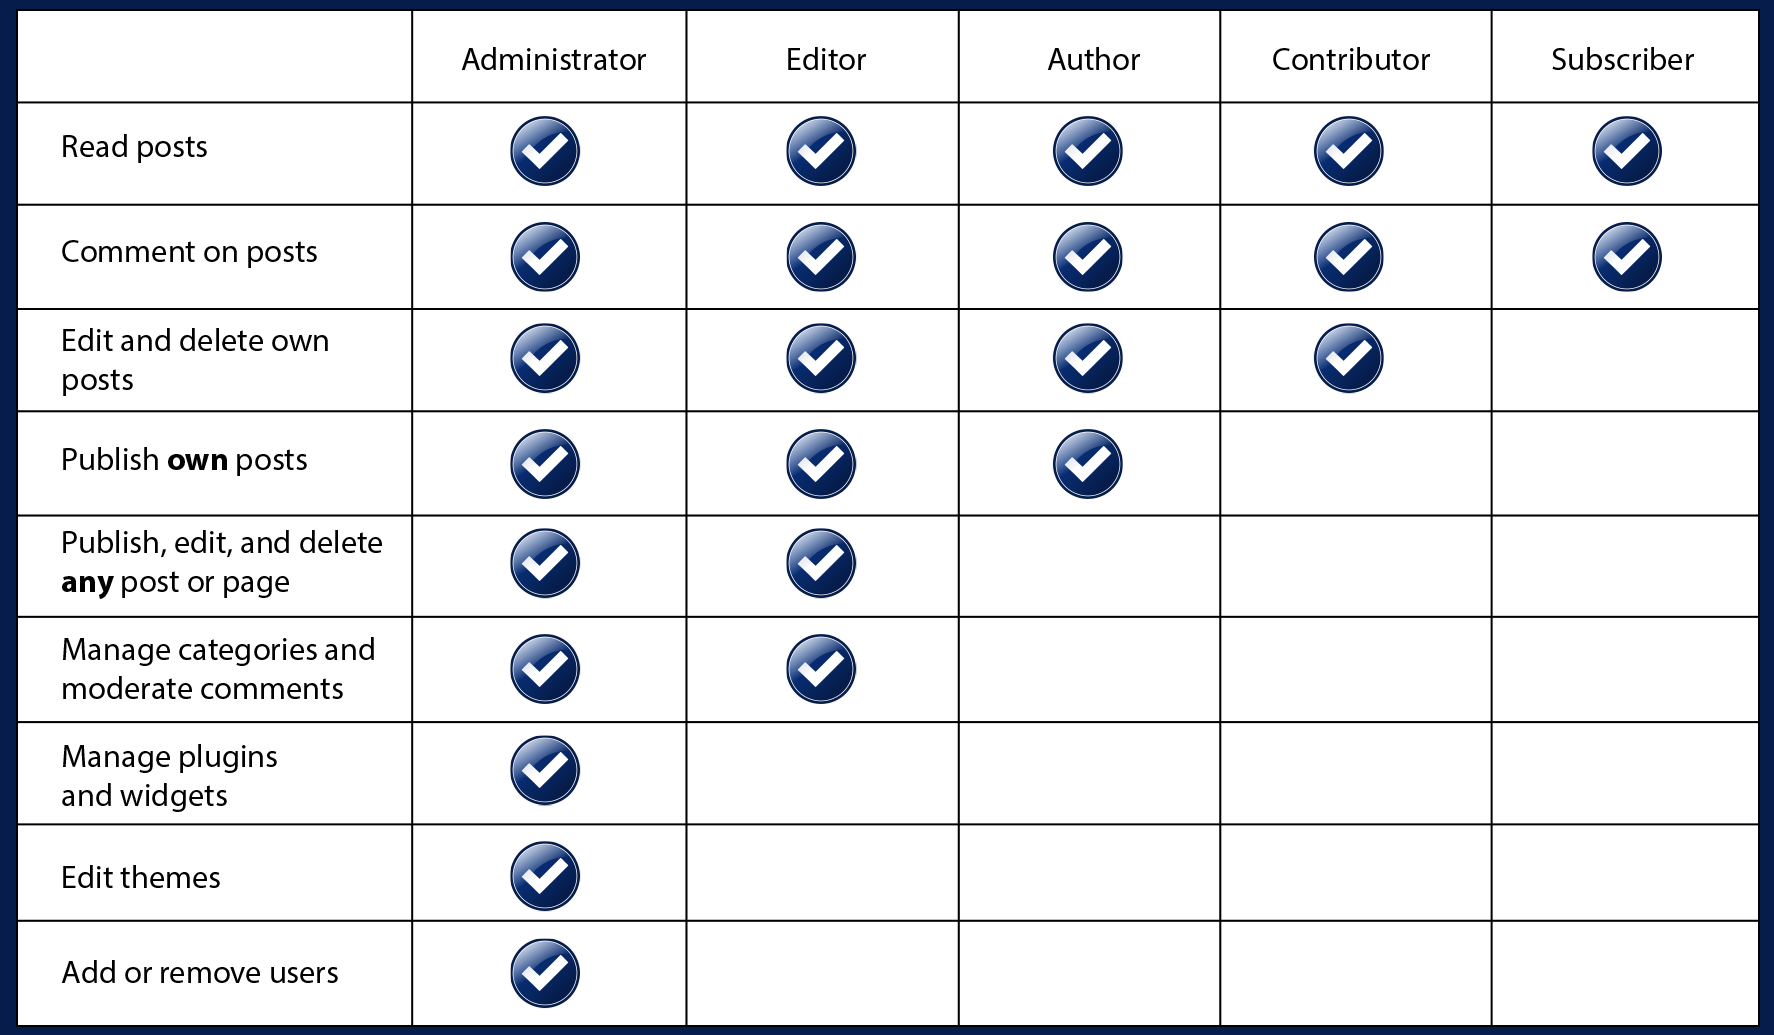 A table showing the permissions of each user role in WordPress